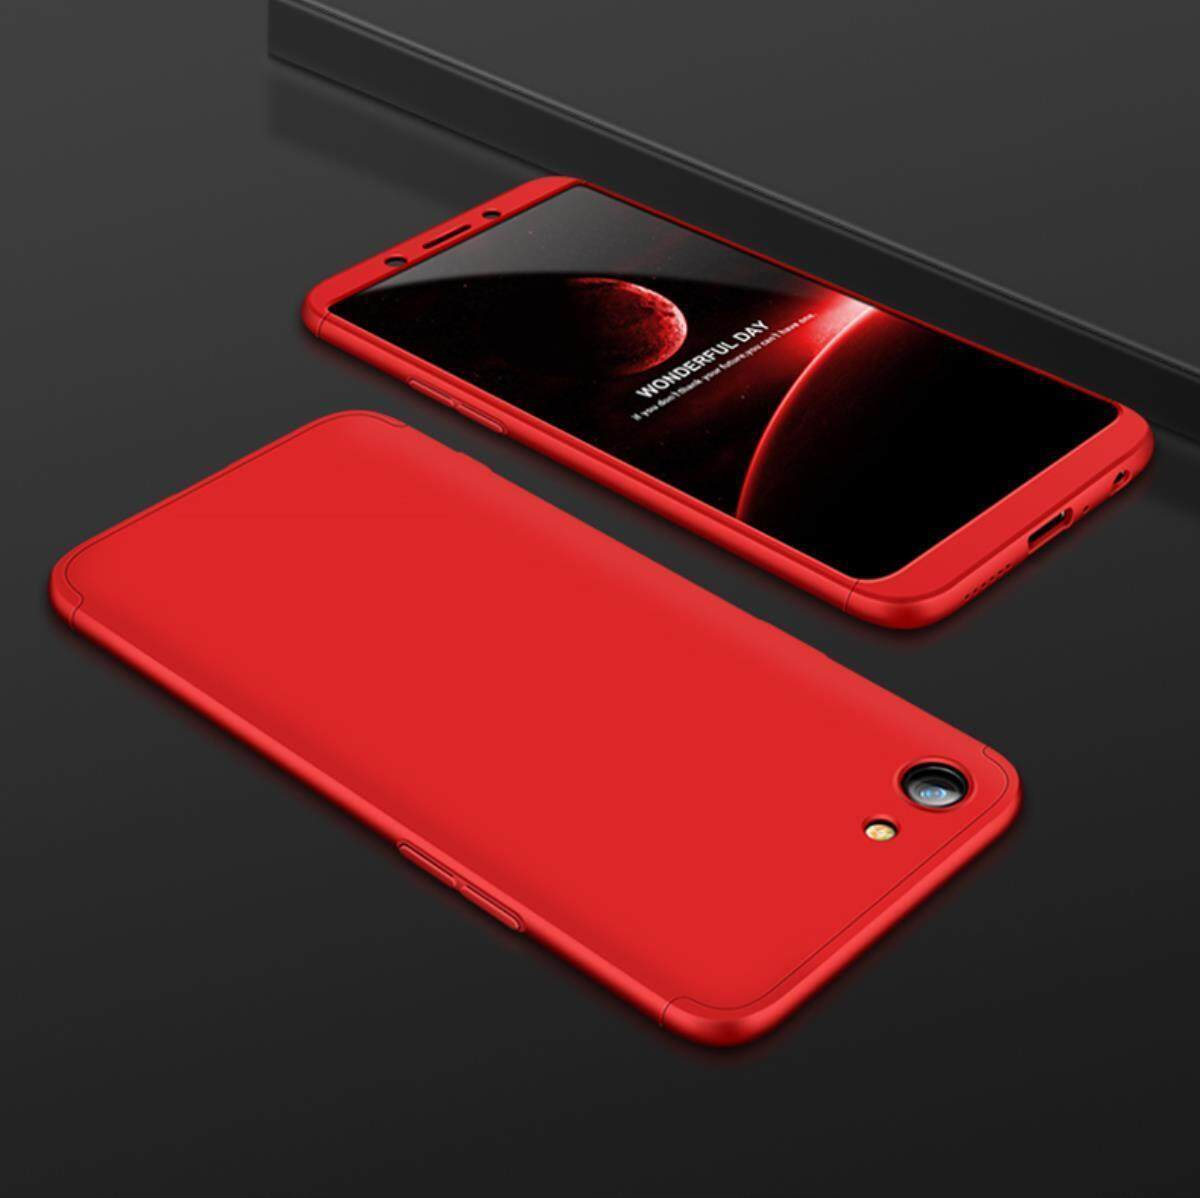 Oppo Phone Cases Philippines Cellphone For Sale Case Jelly Prices Reviews Lazada